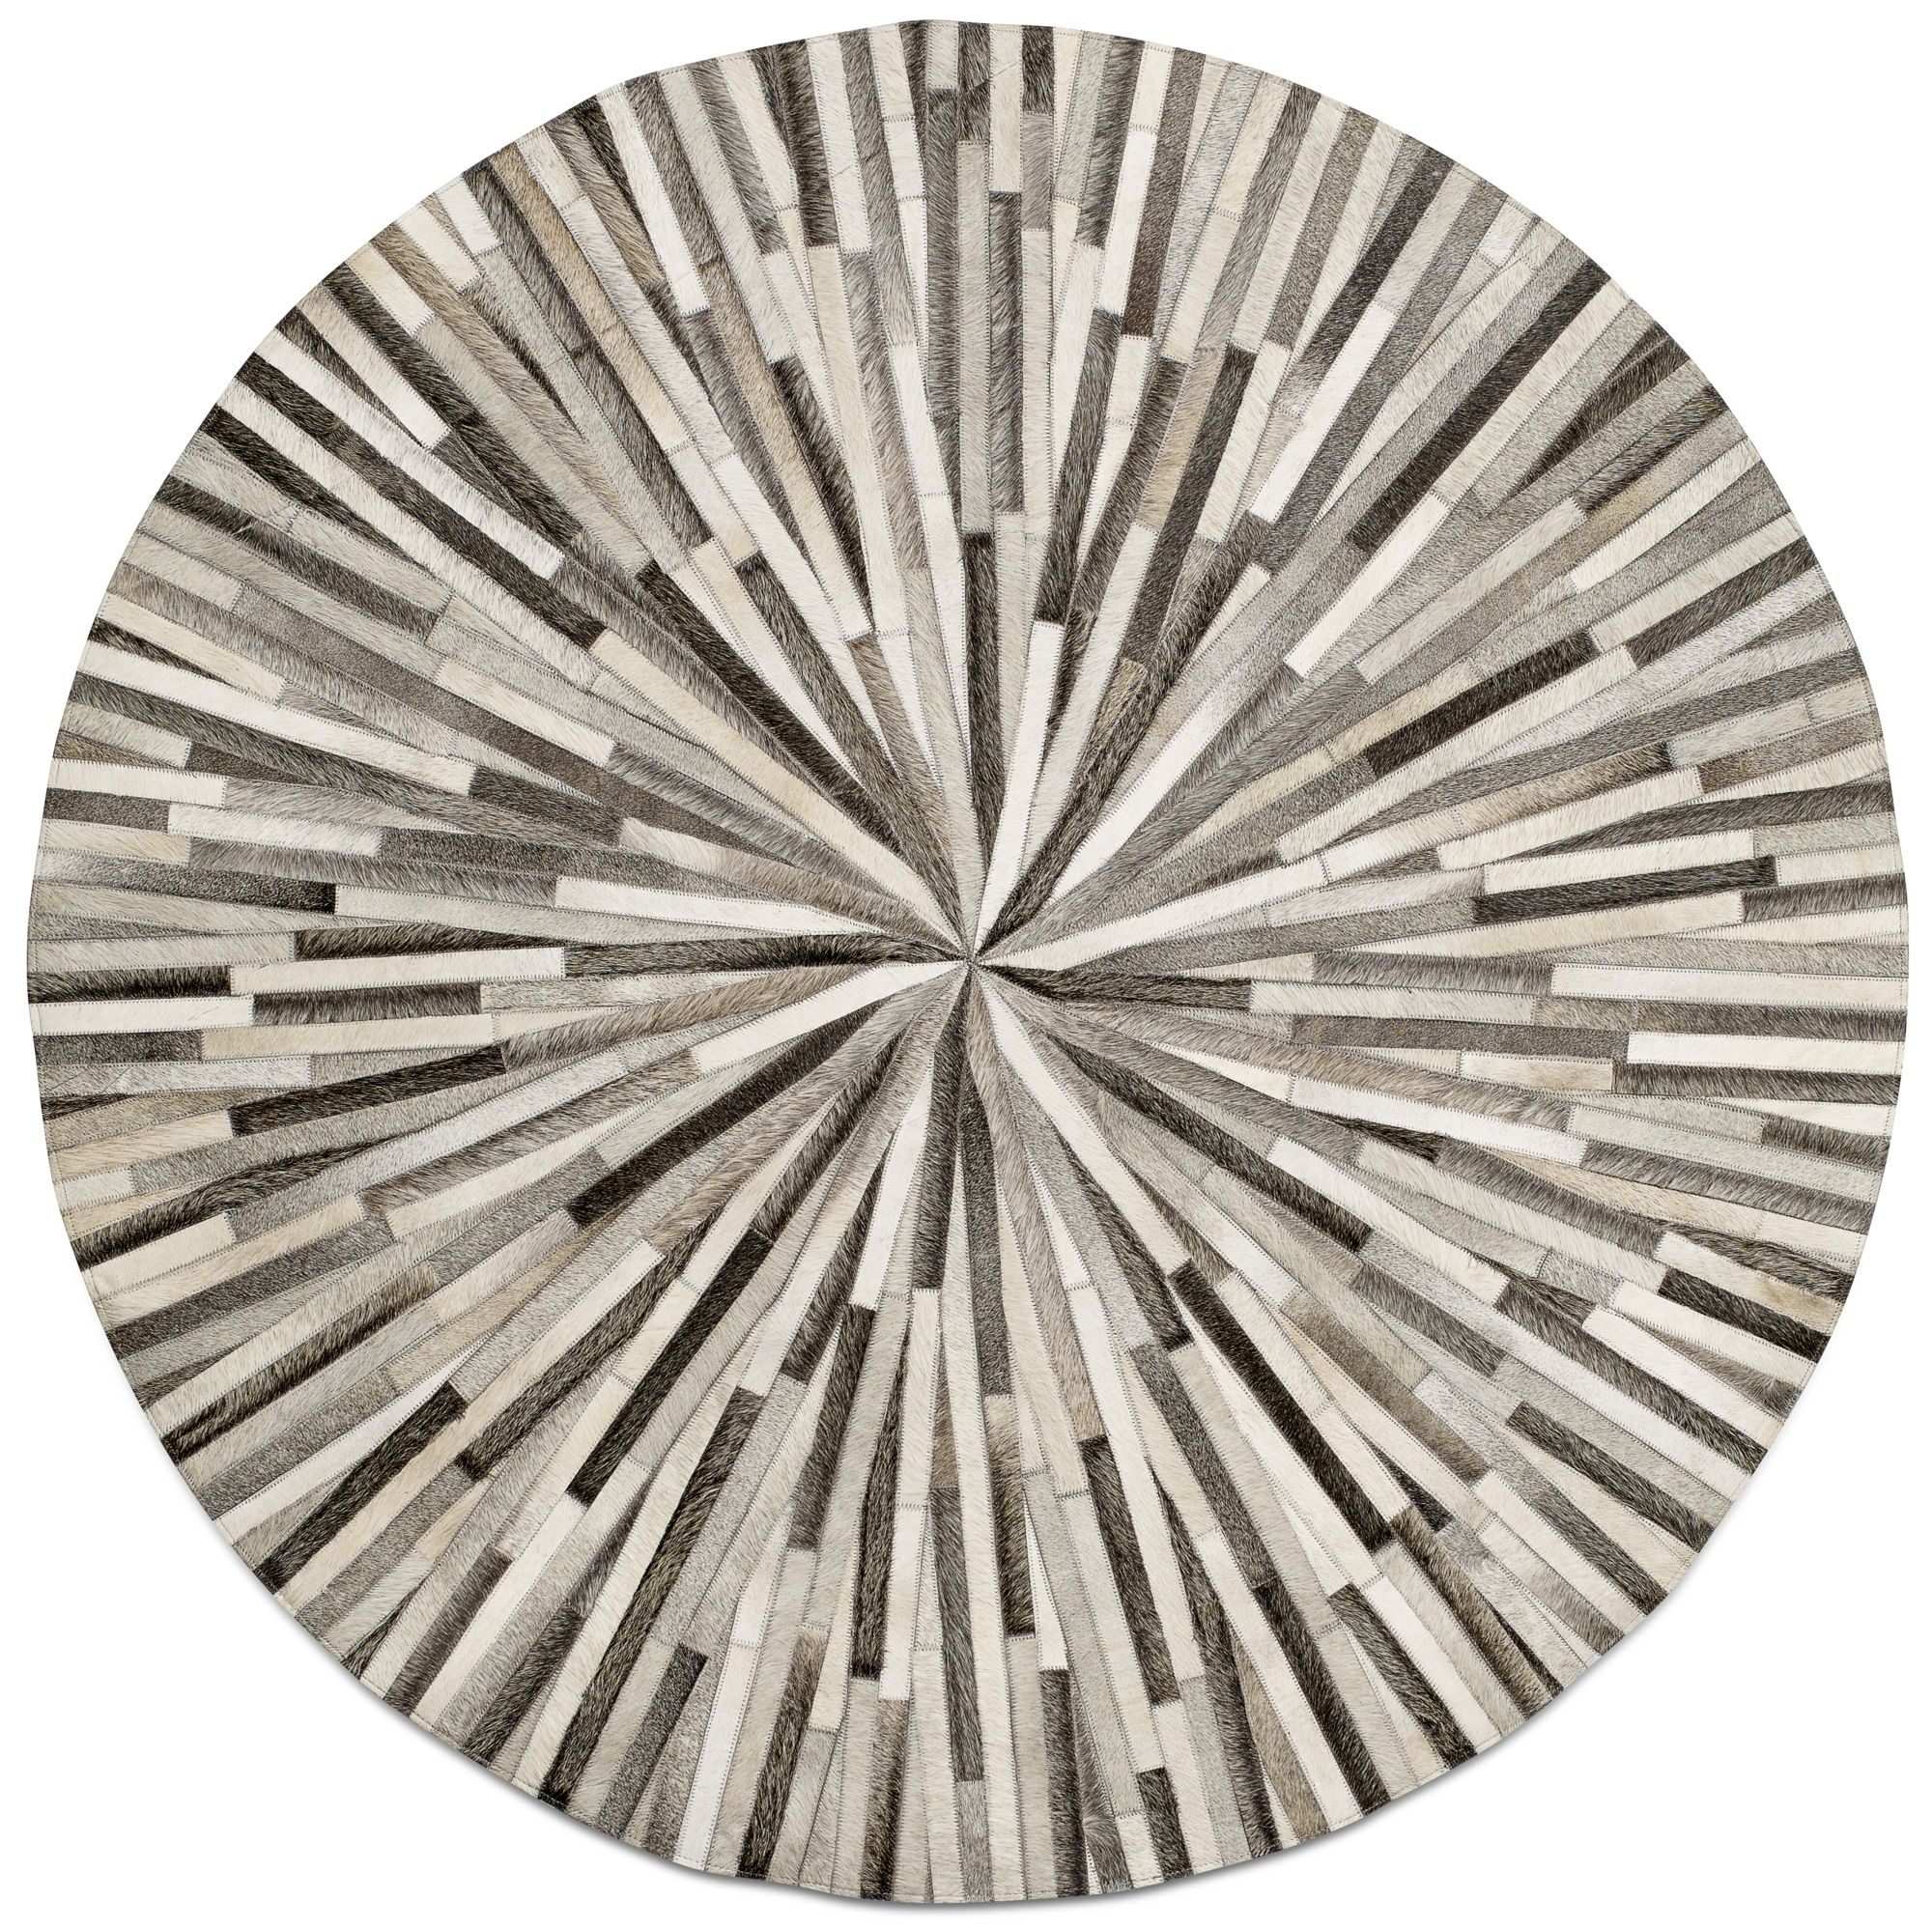 Round carpets gray cowhide leather 150cm diameter modern round carpets - quality from boconcept KWLEZAU